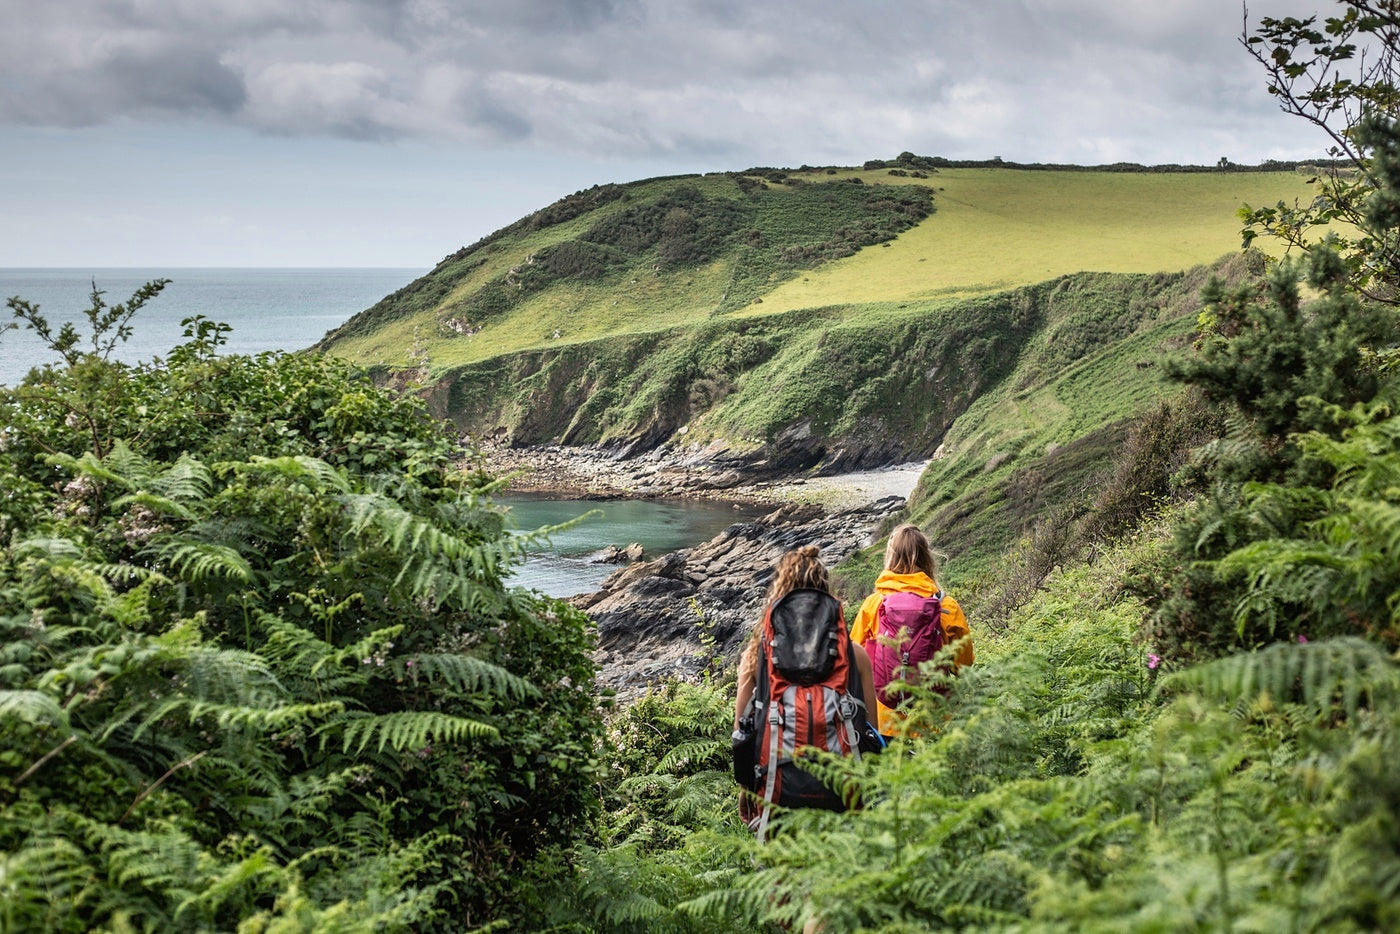 The author and friends winding their way down a coastal trail to blue waters